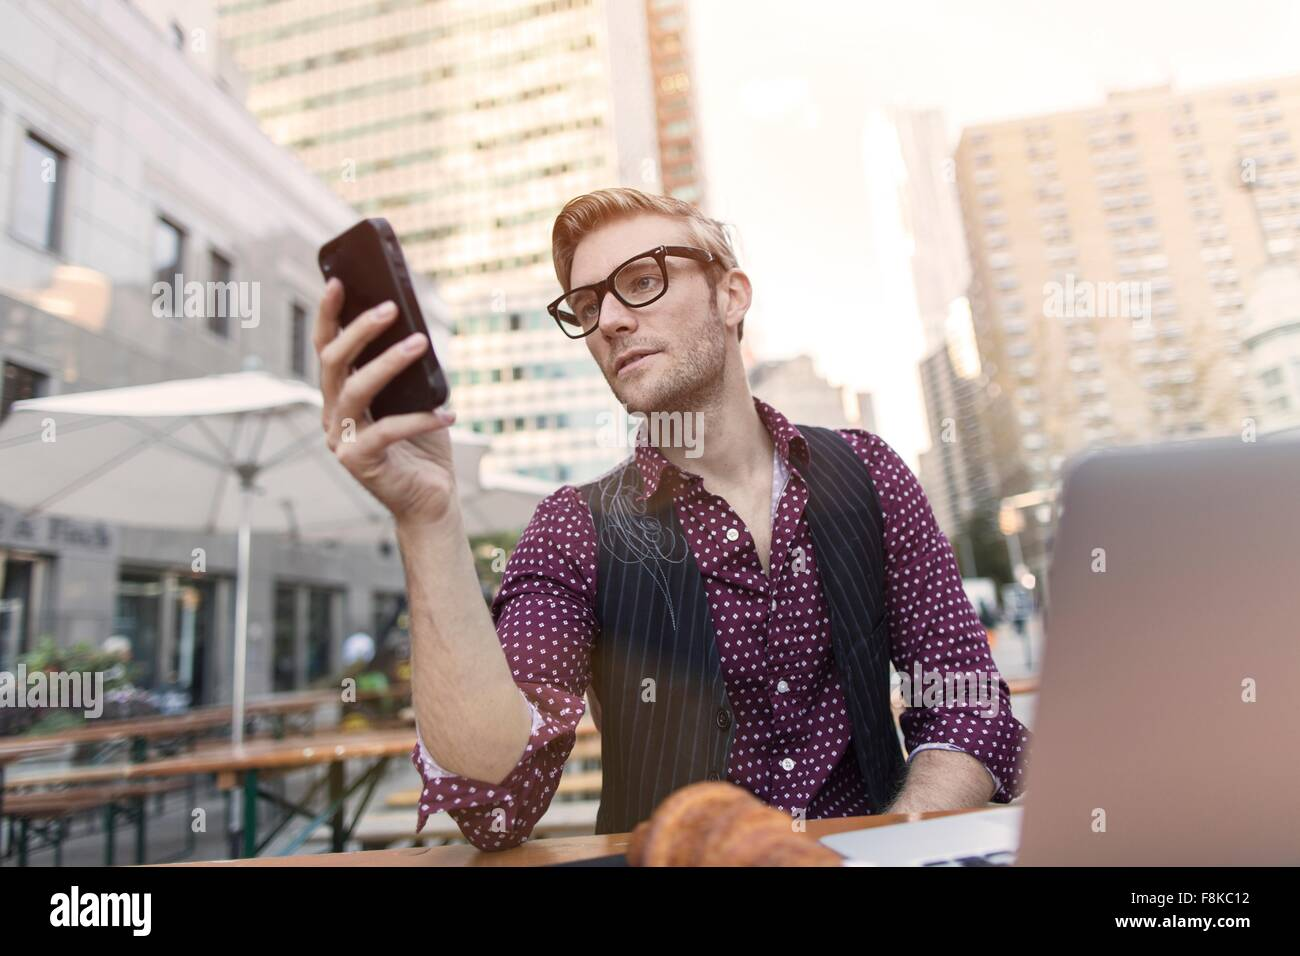 Stressed young businessman reading smartphone at sidewalk cafe, New York, USA - Stock Image